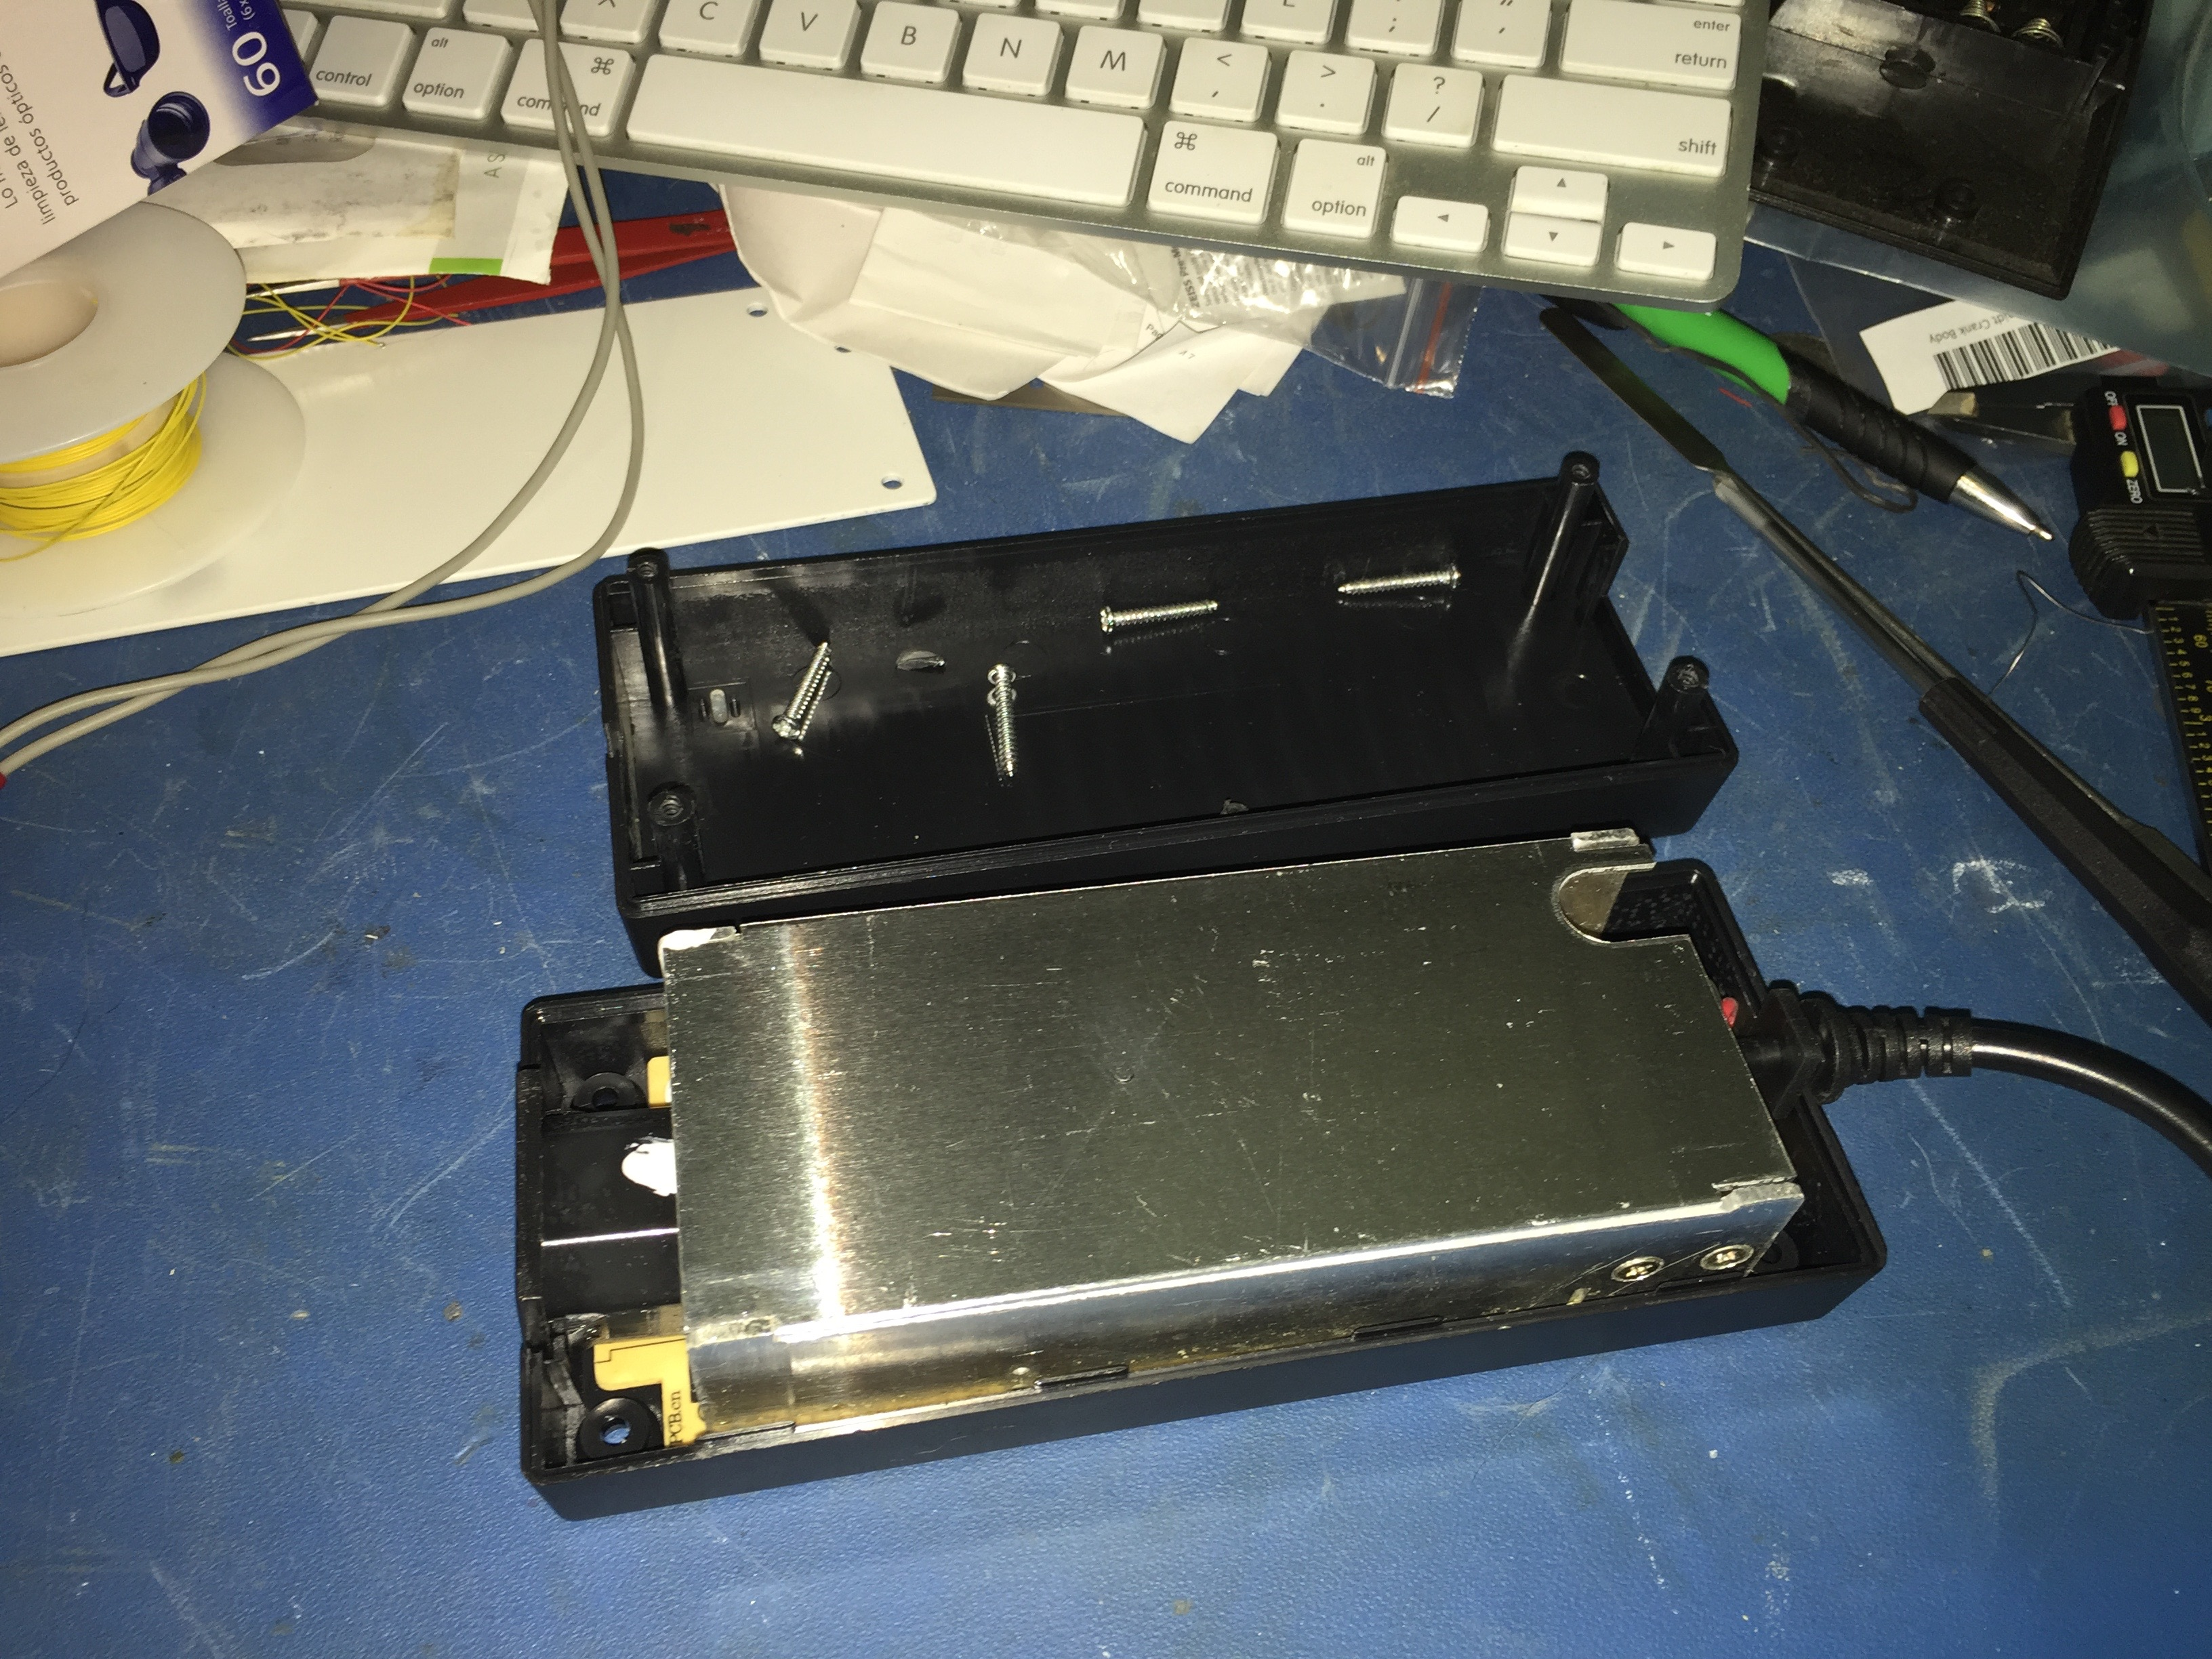 Power Supply with Lid Off